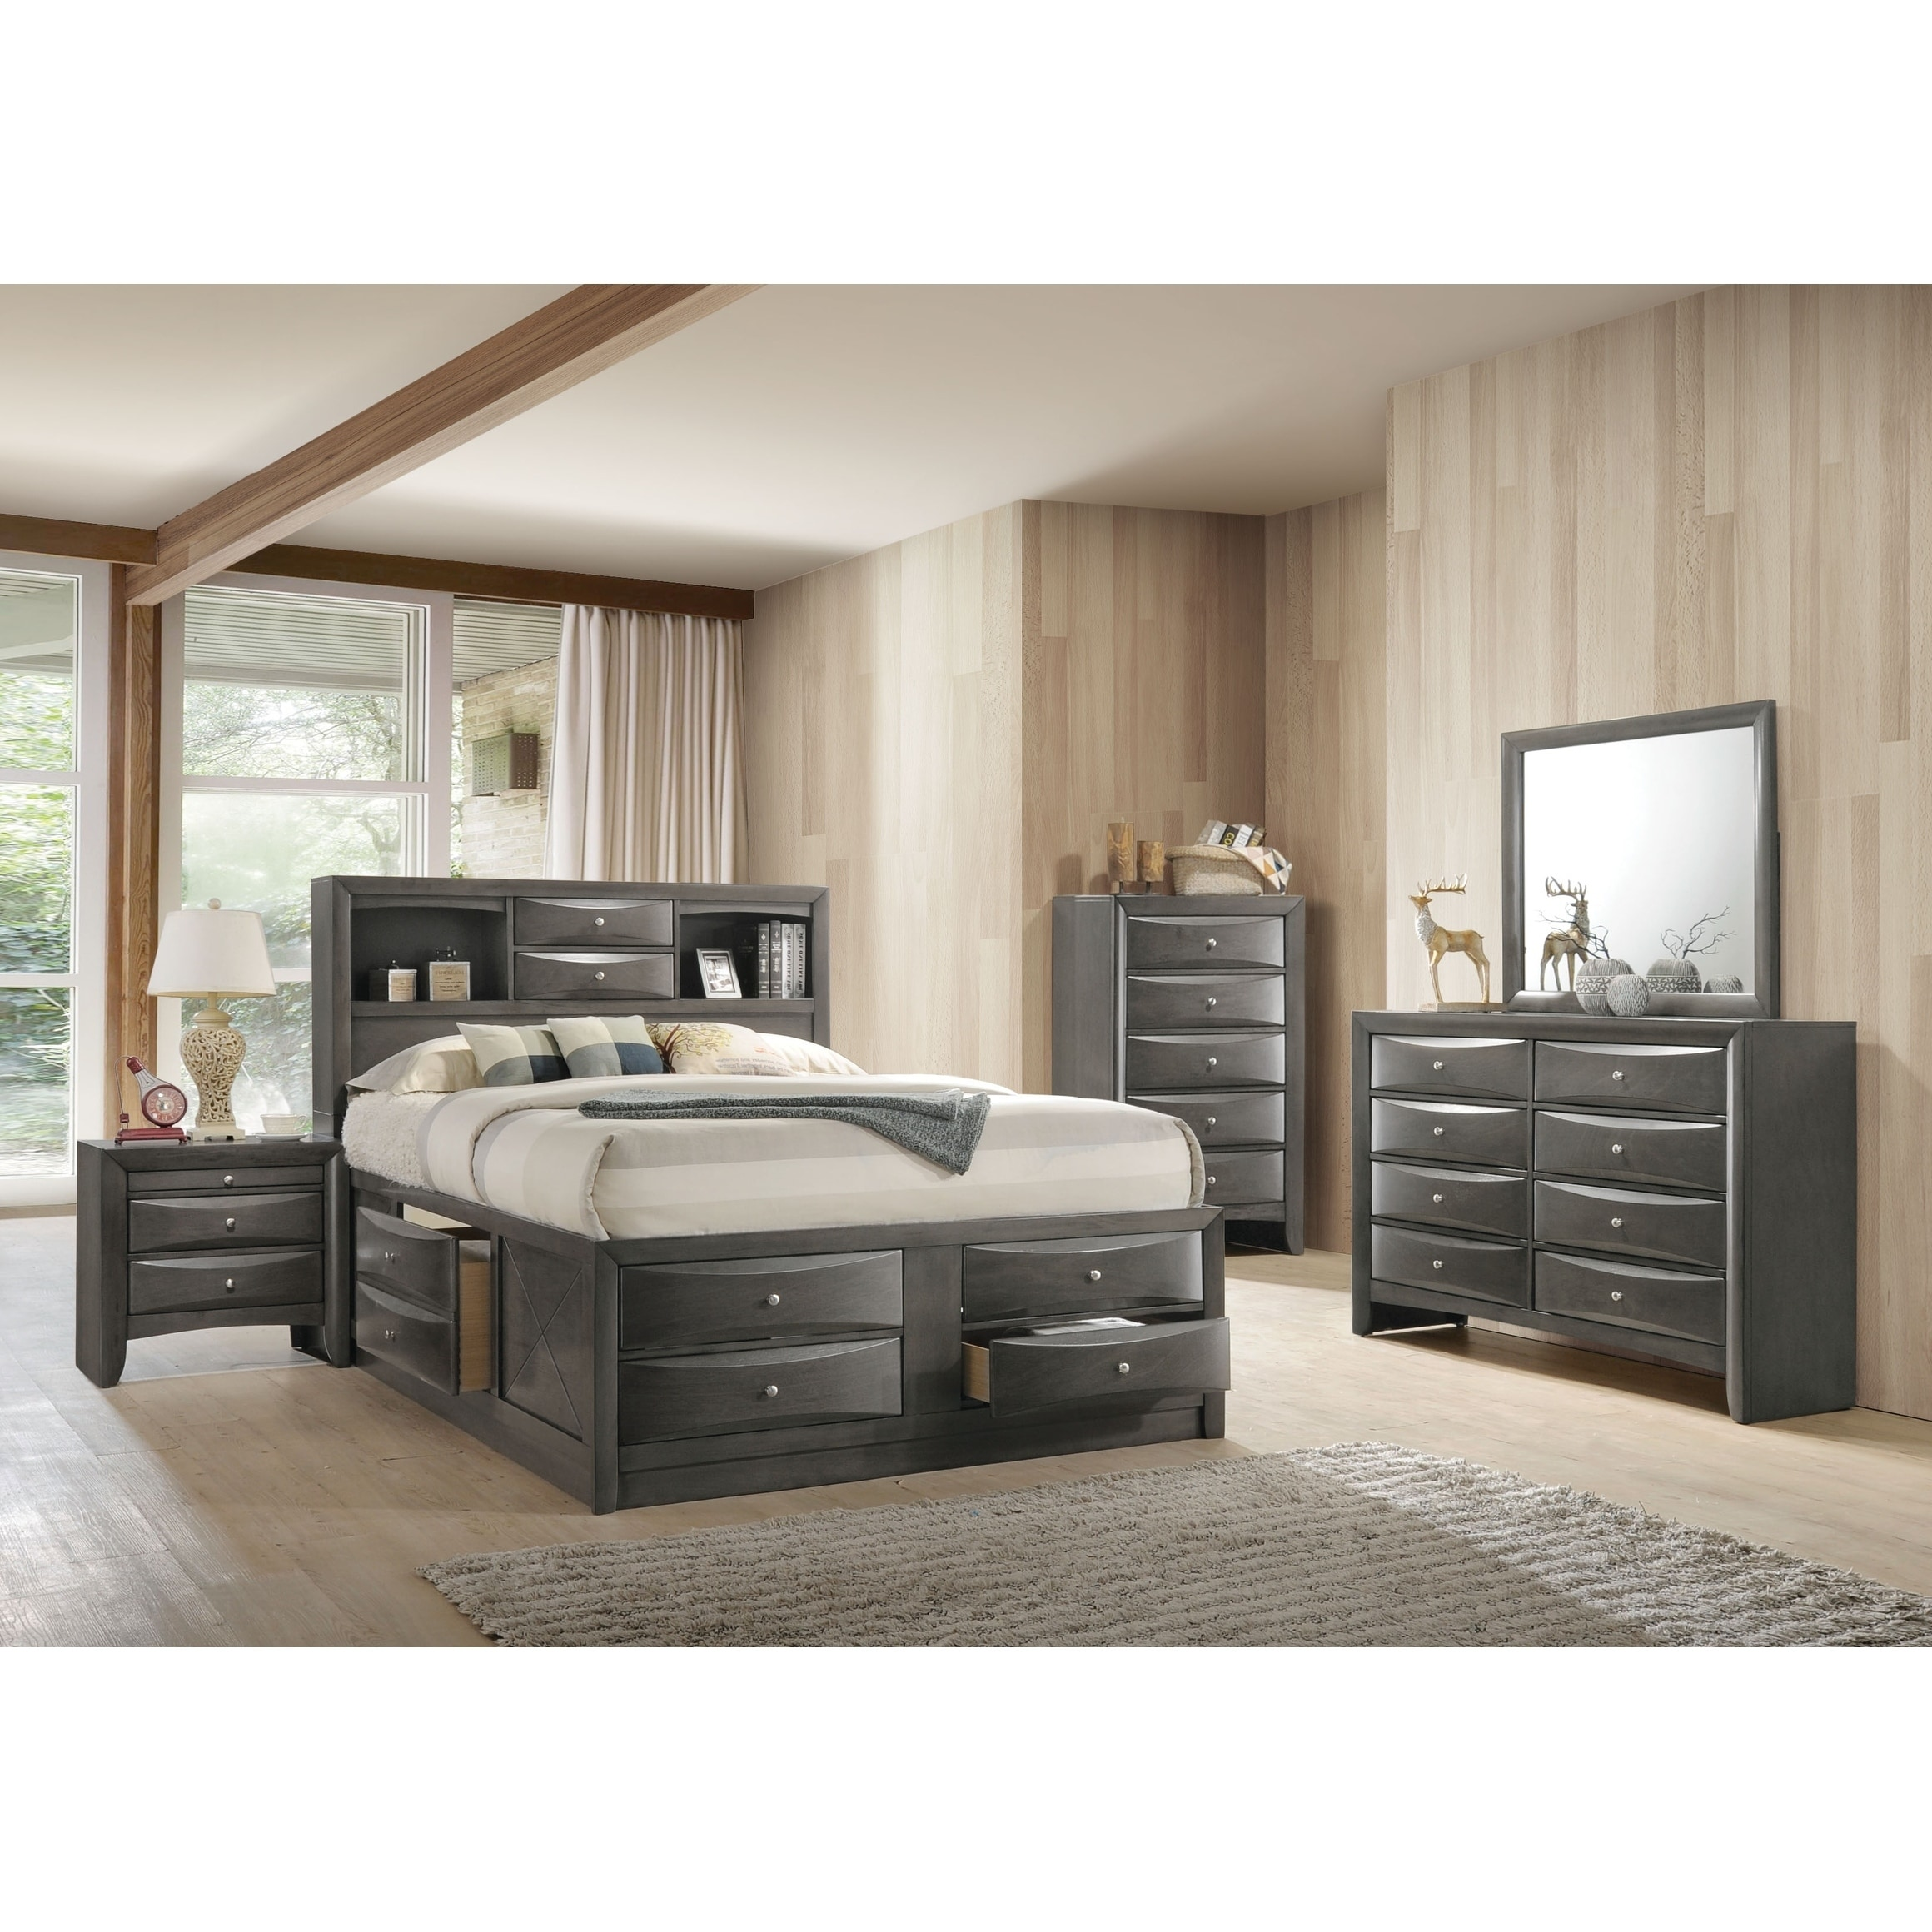 Shop ACME Ireland Storage Queen Bed in Gray Oak - Overstock - 19297429